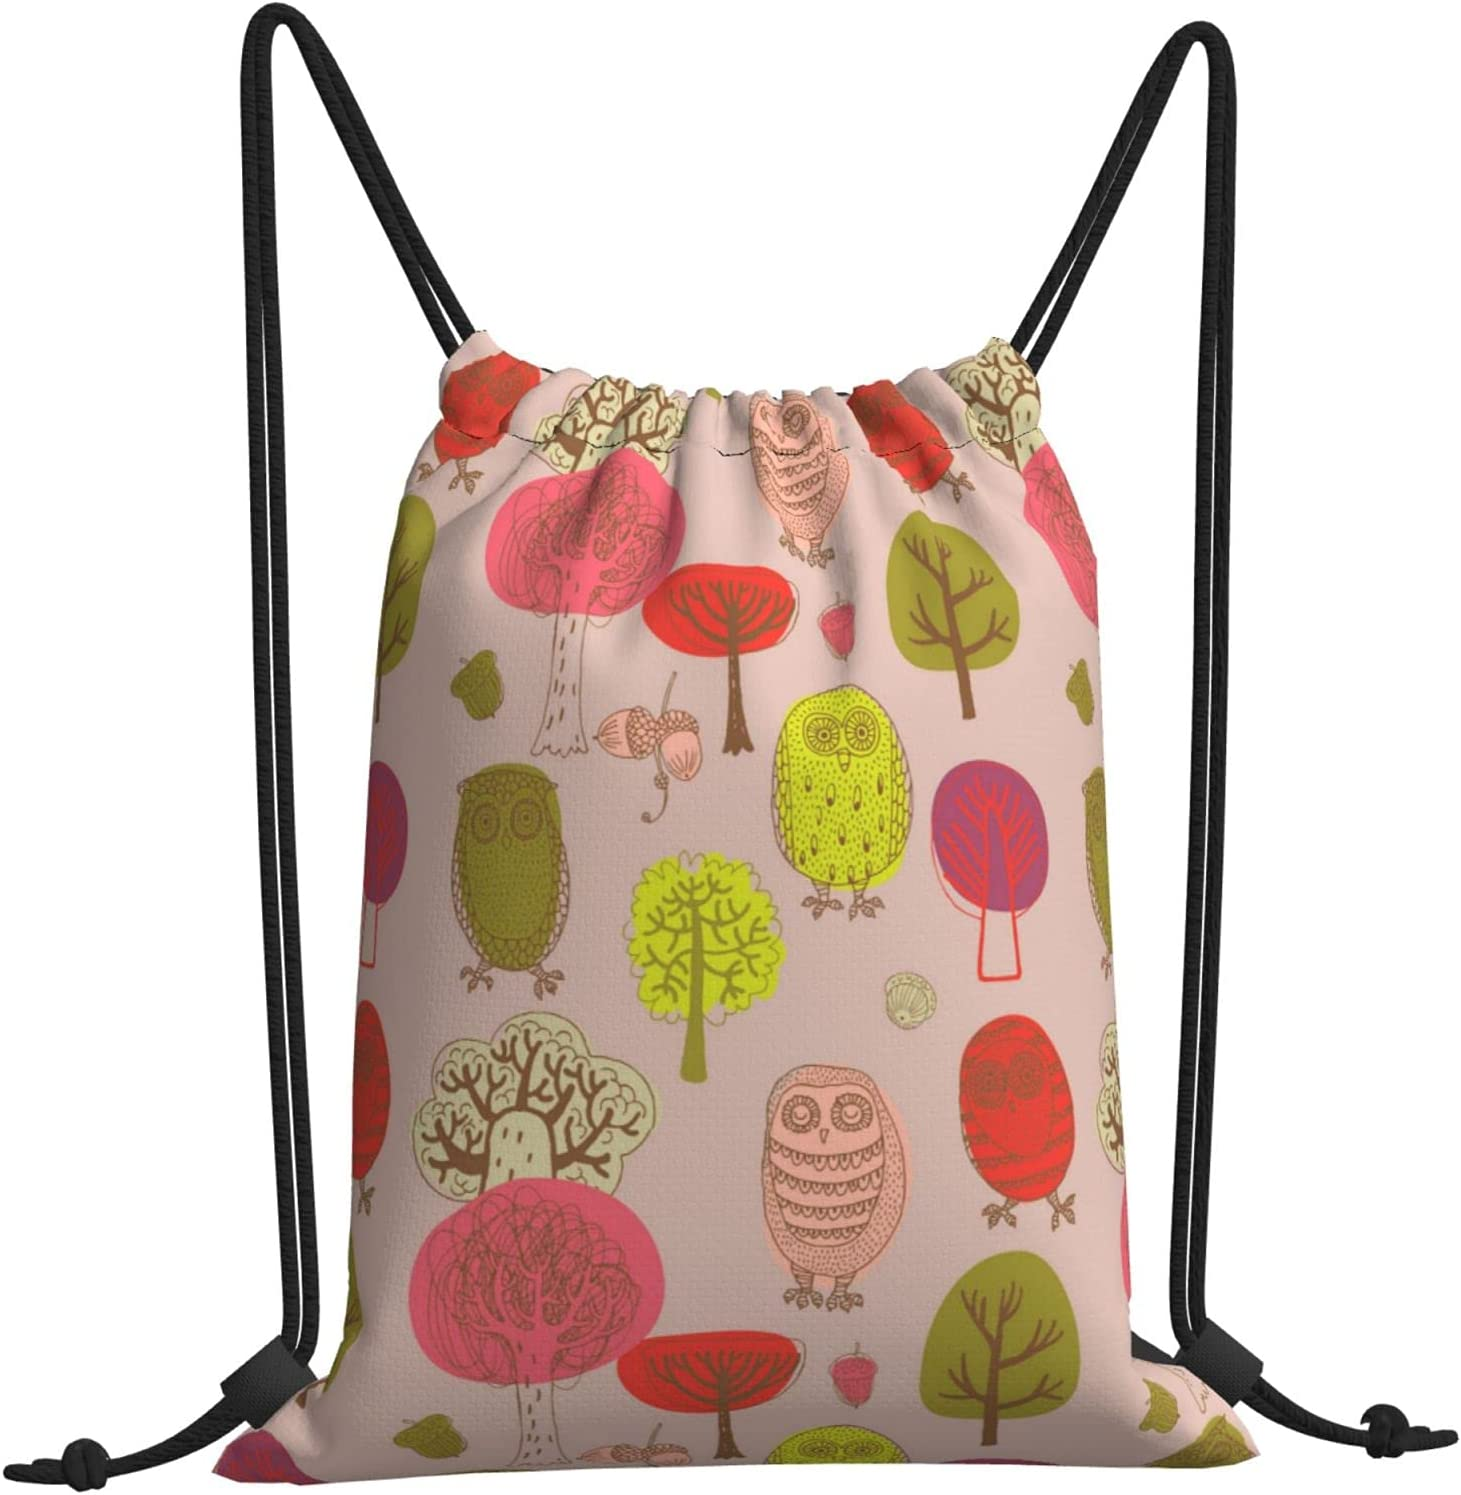 Autumn Forest With Max 50% OFF Owls Gymnastics Drawstring Backpack Direct store Bag Beach